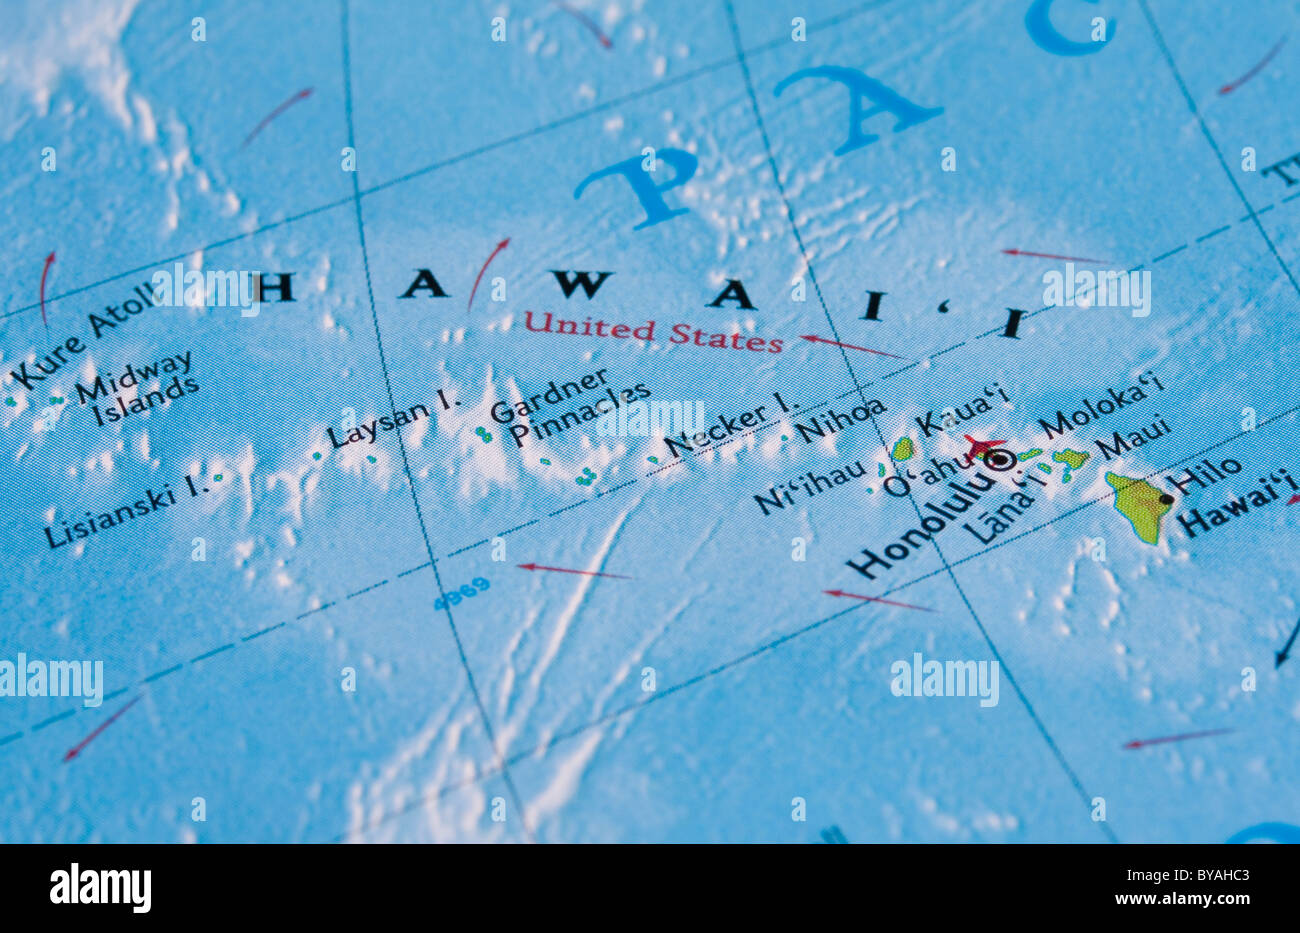 Map Of Hawaii And Map Stock Photos & Map Of Hawaii And Map Stock ...